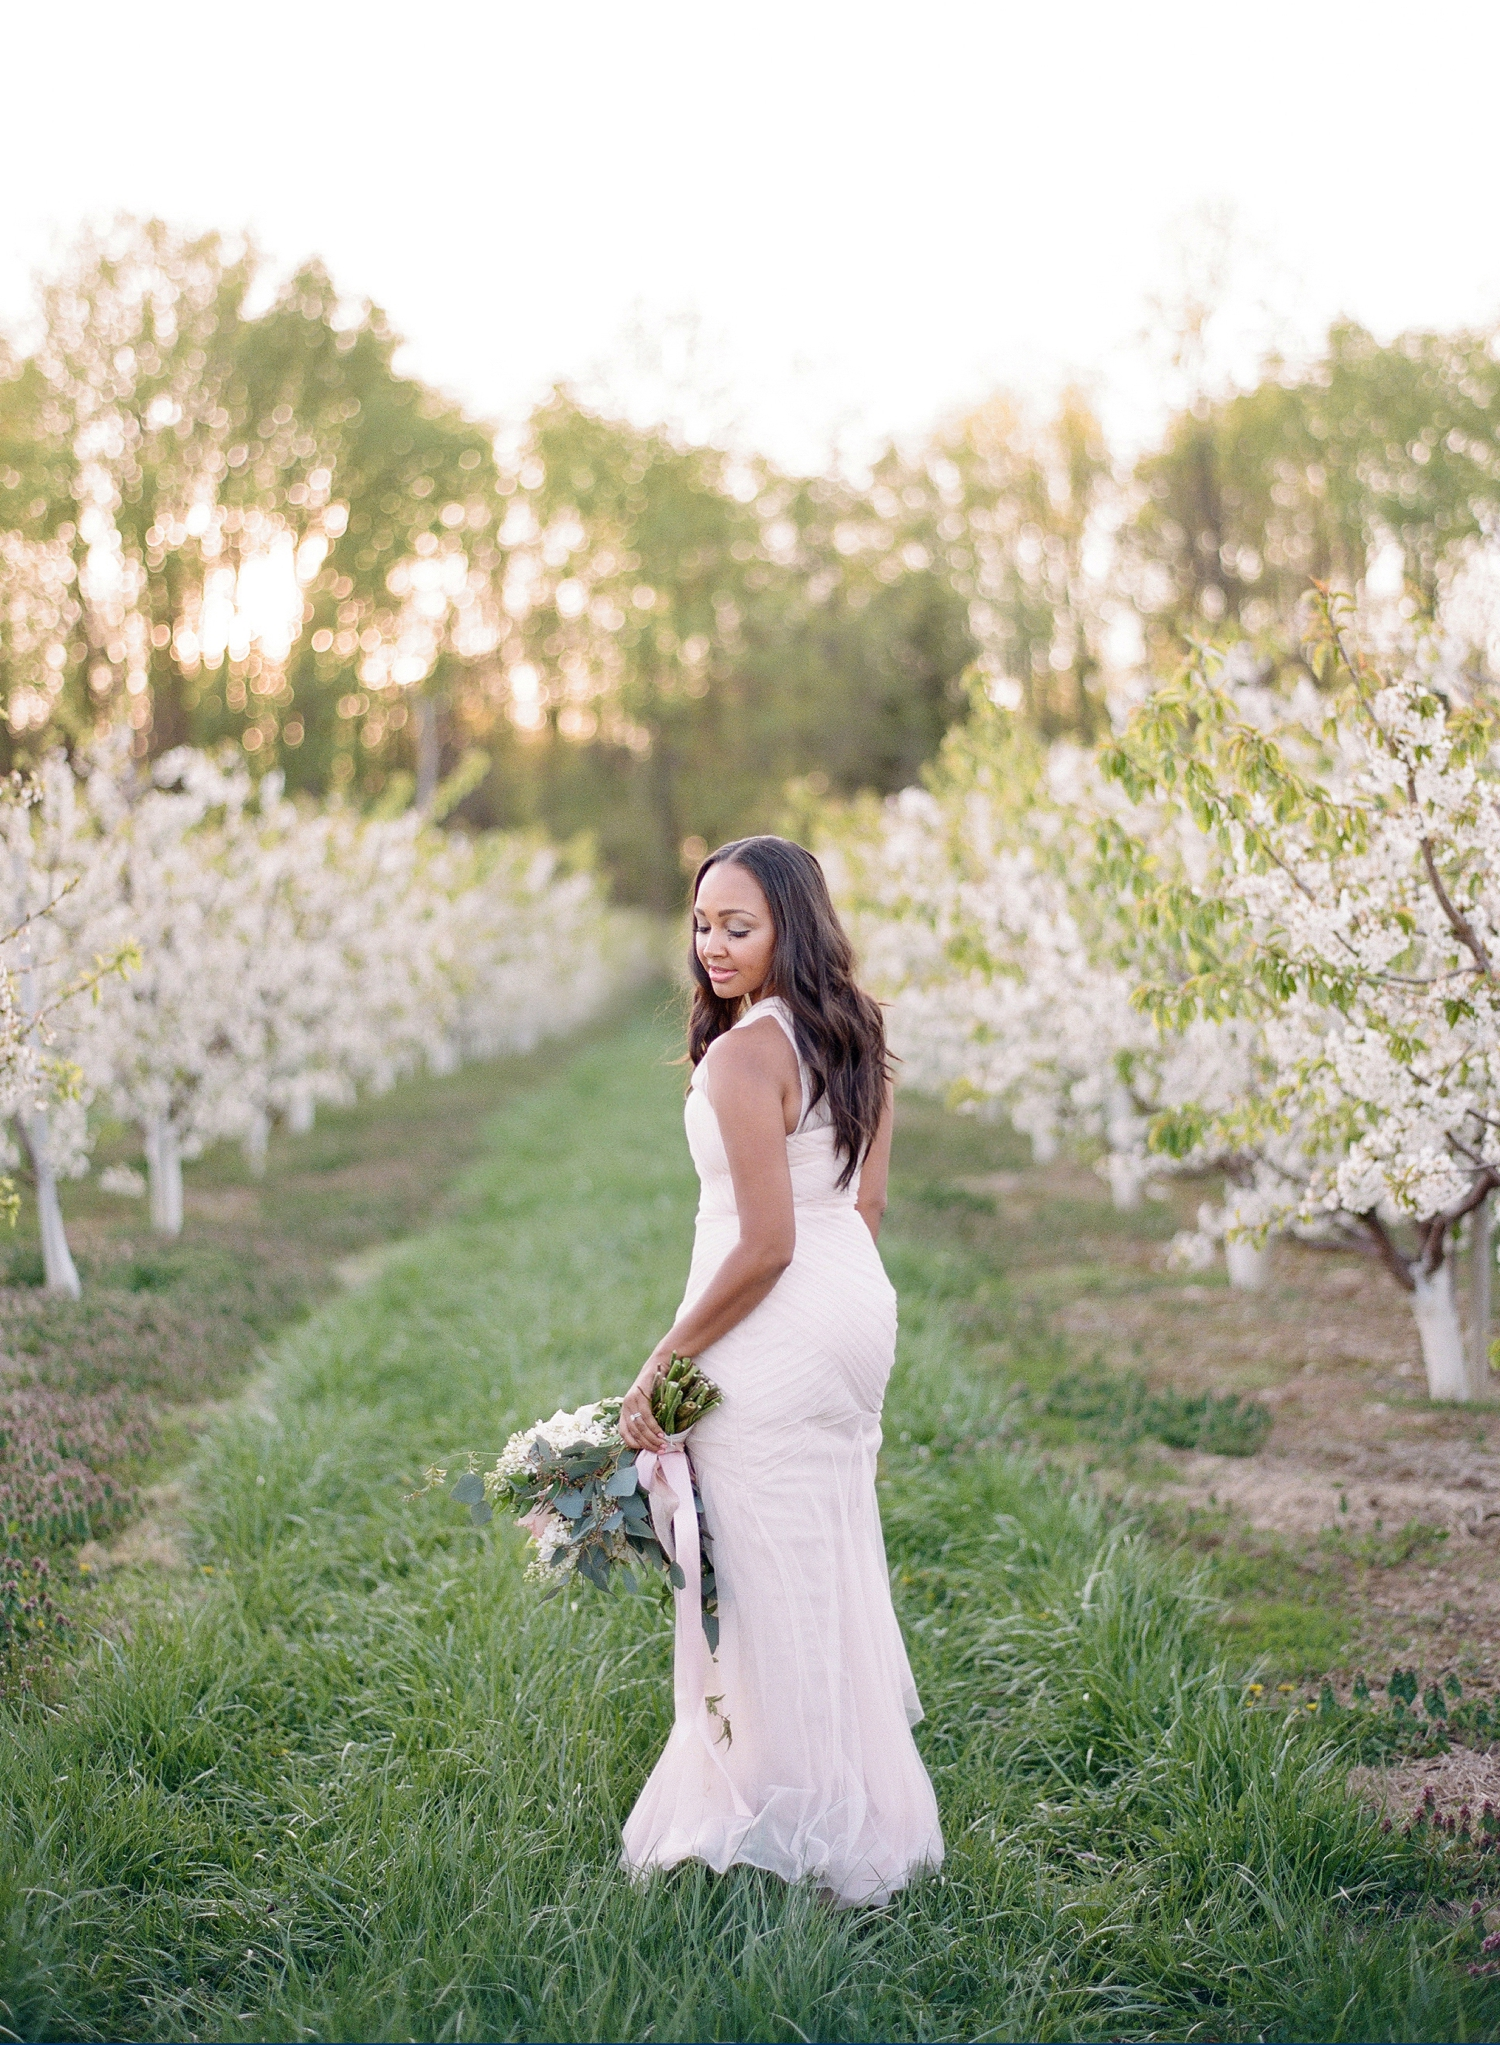 bridal orchard inspiration shoot on film I Washington DC